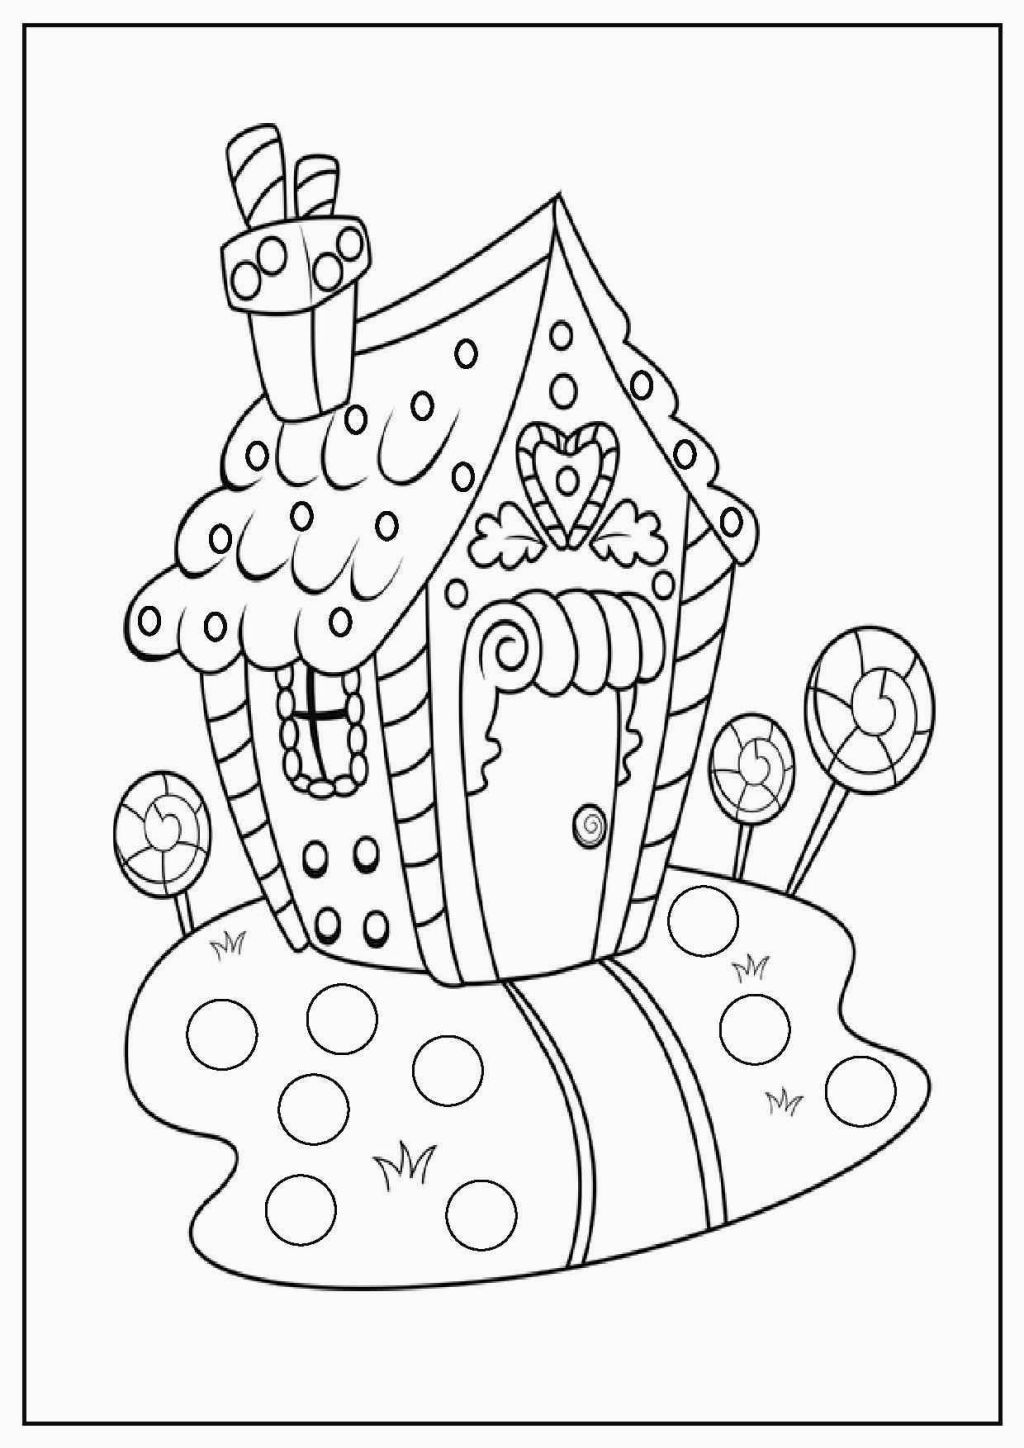 Twas The Night Before Christmas Printable Coloring Pages